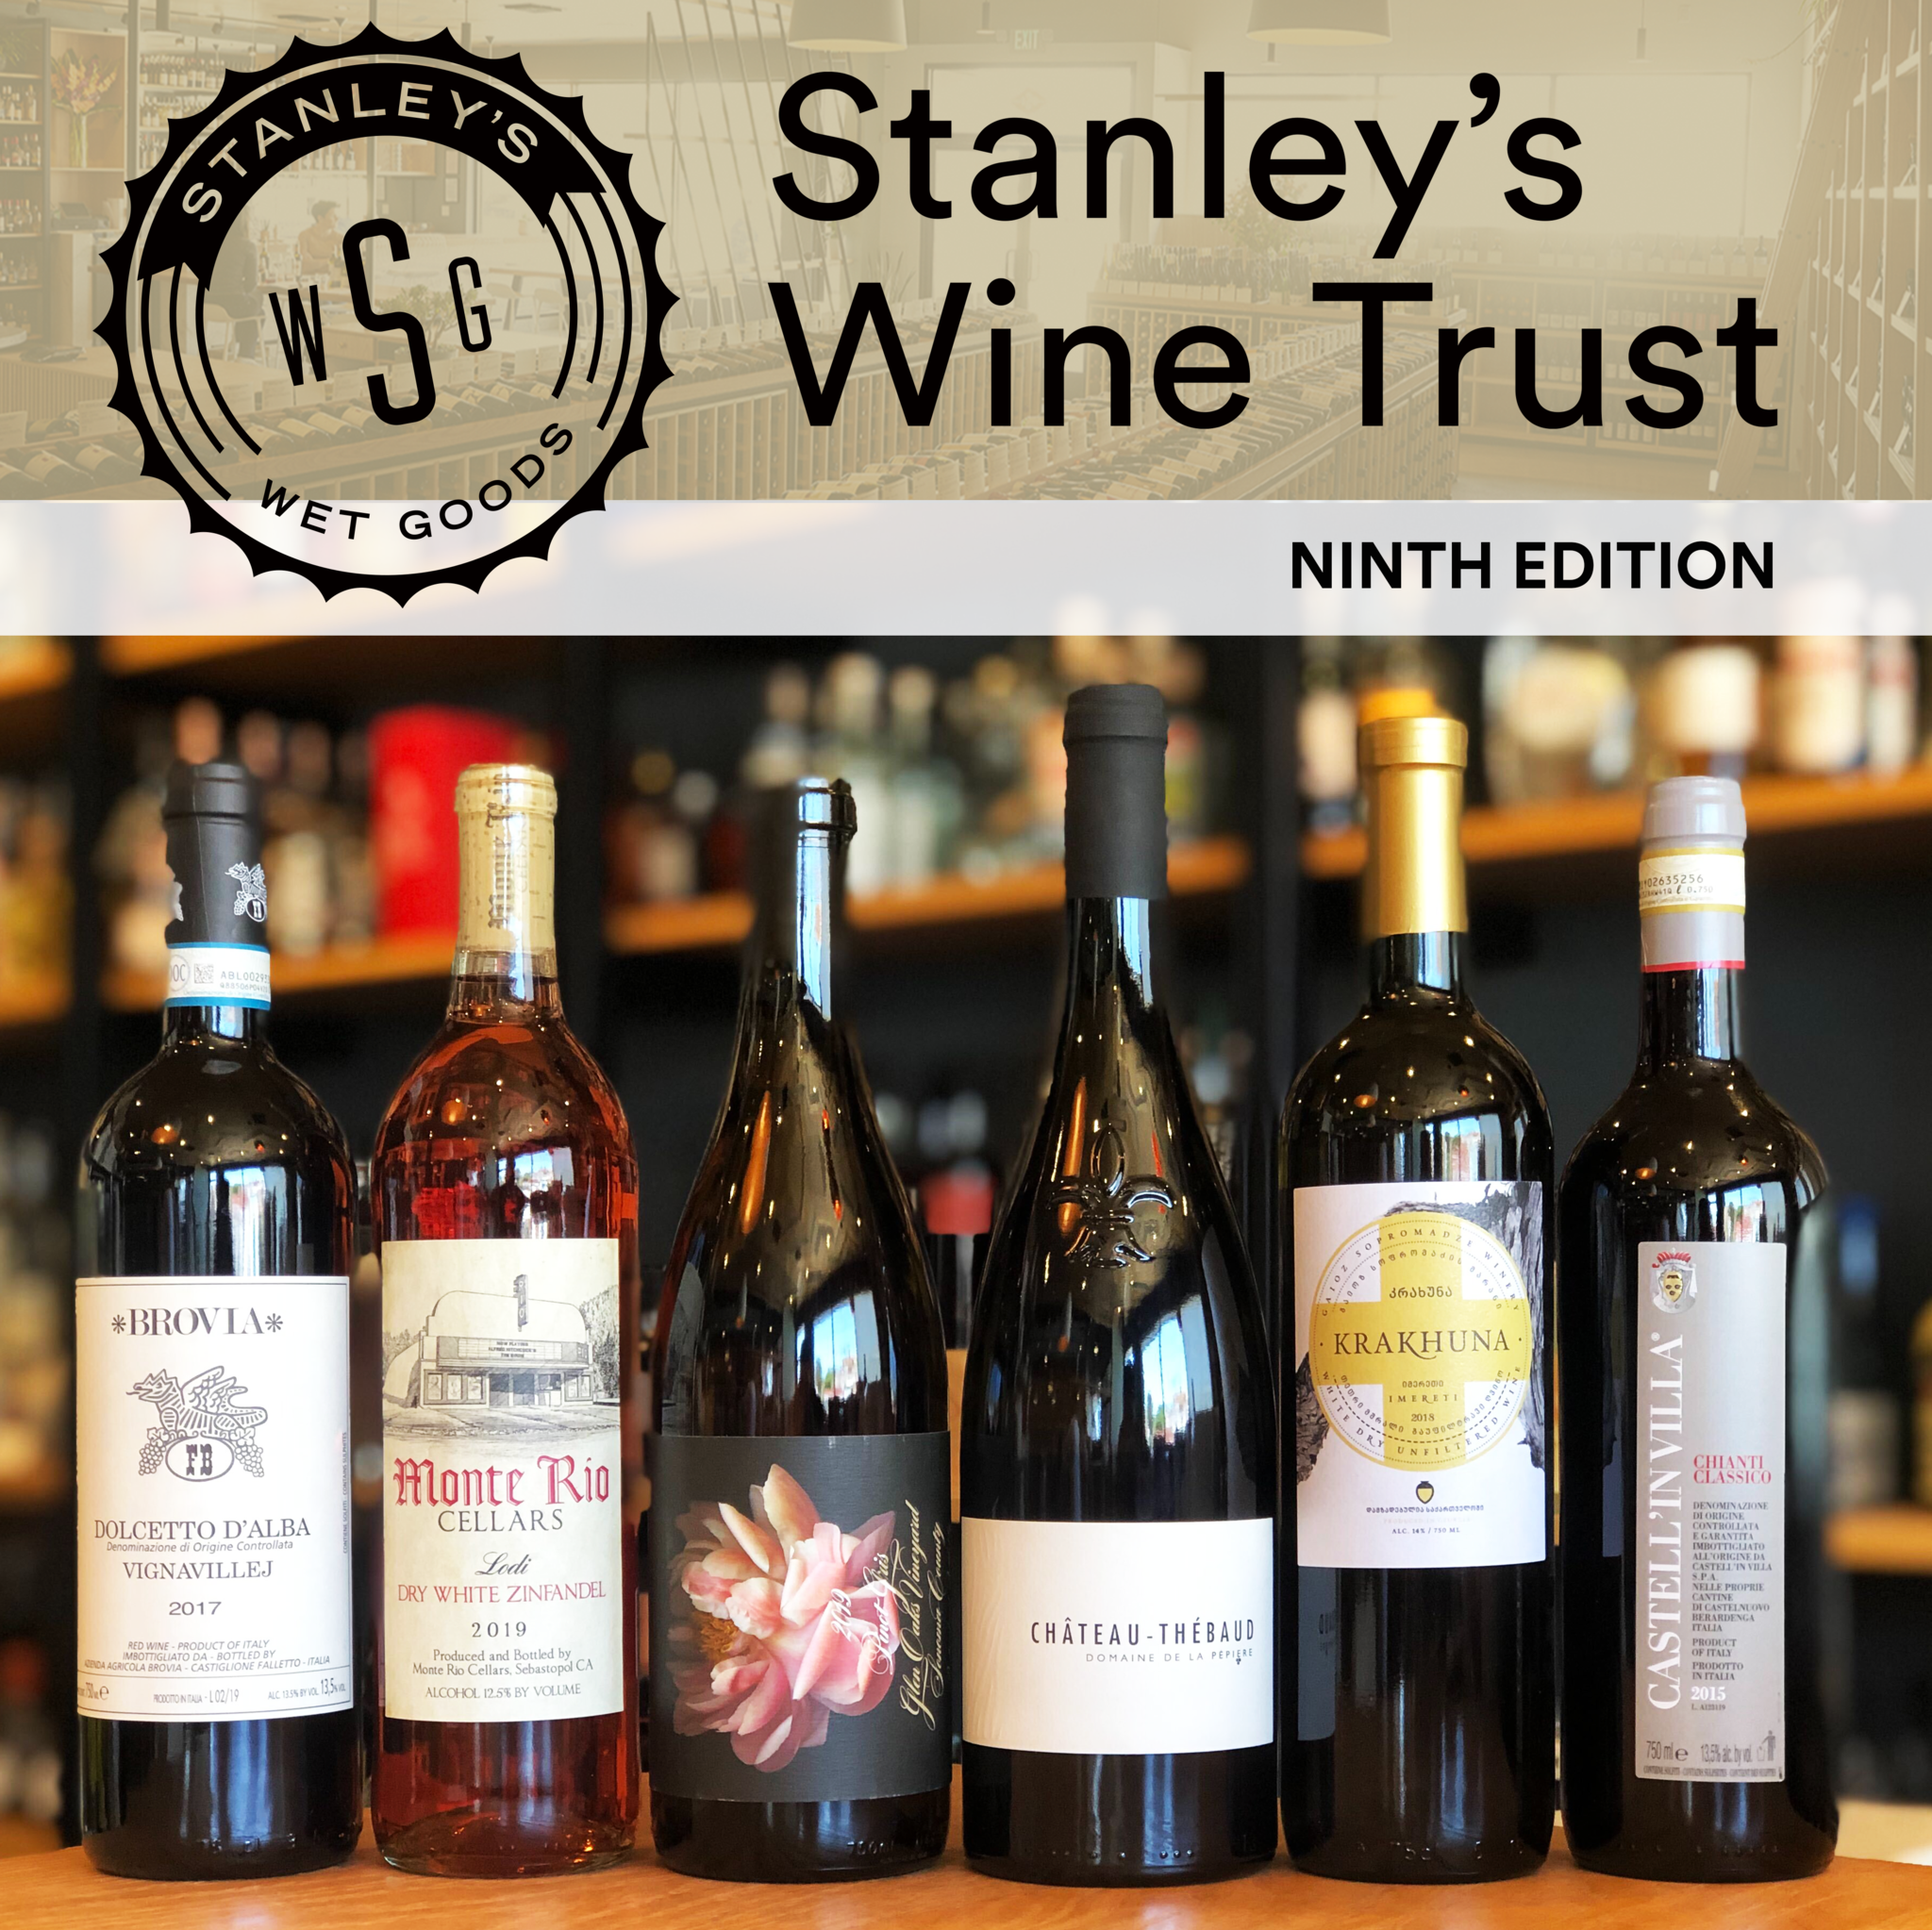 Stanley's Wine Trust - 9th Edition